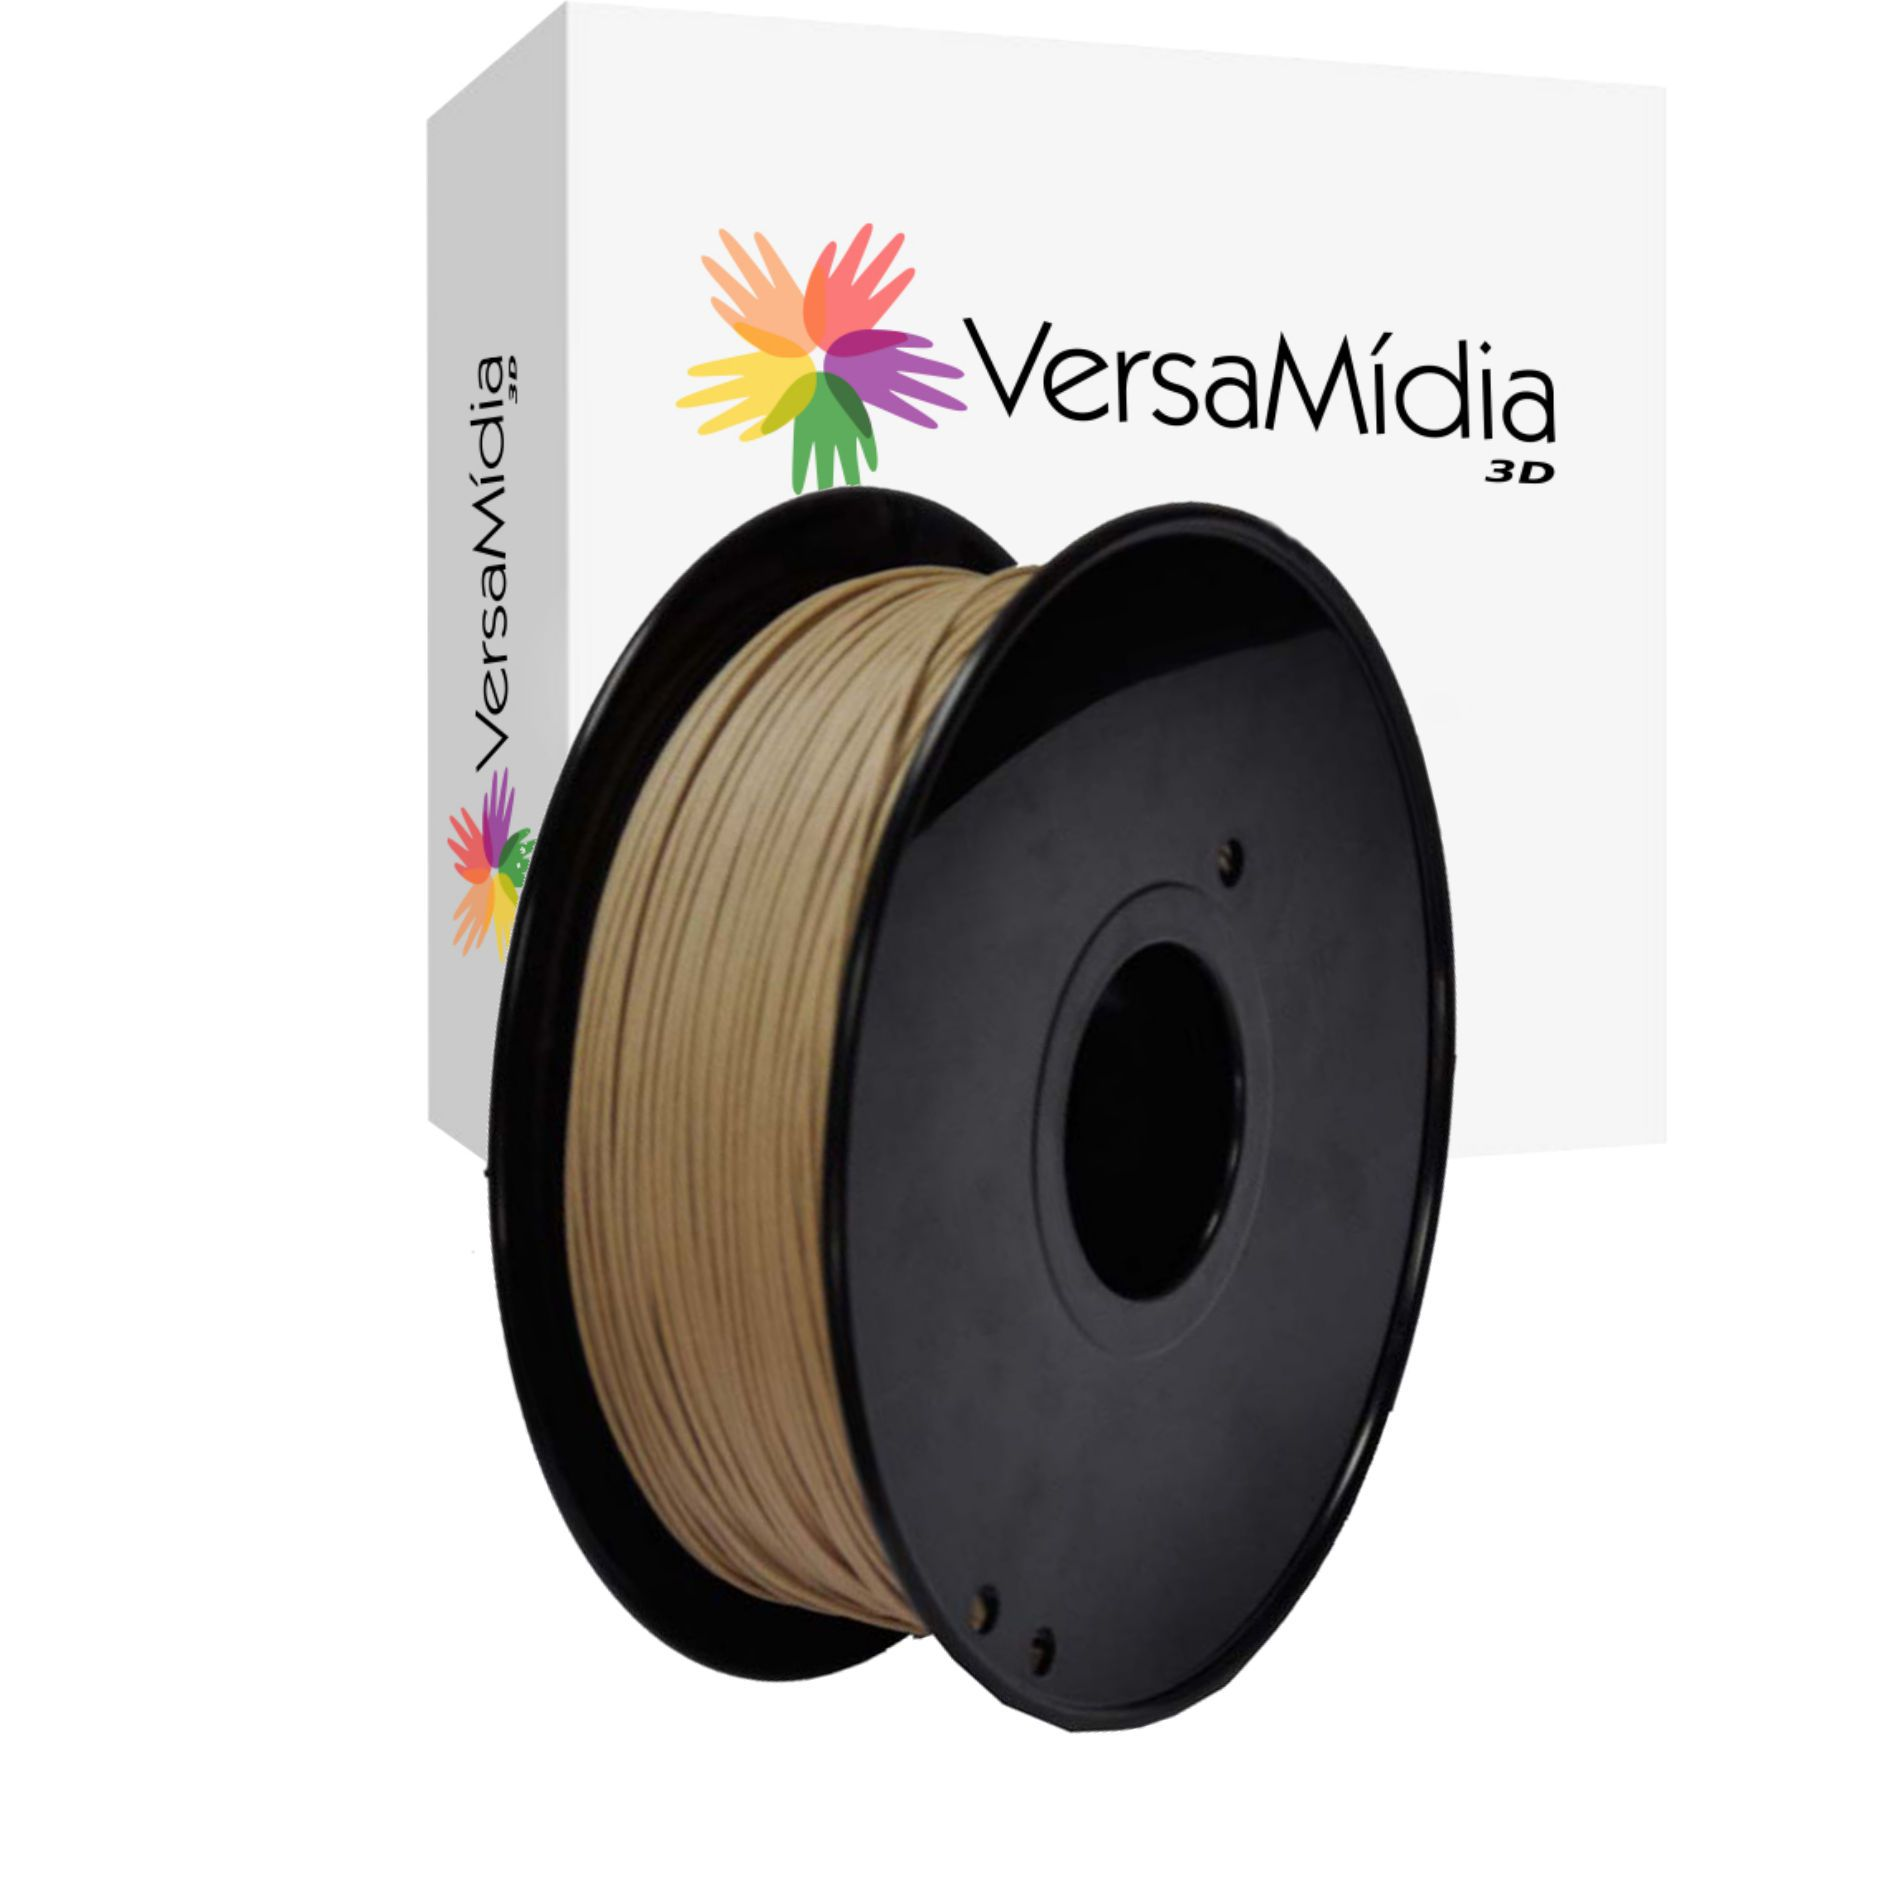 Filamento Wood Natural Madeira + PLA VersaMídia 3D Premium  1.75mm Black Spool  - 11520